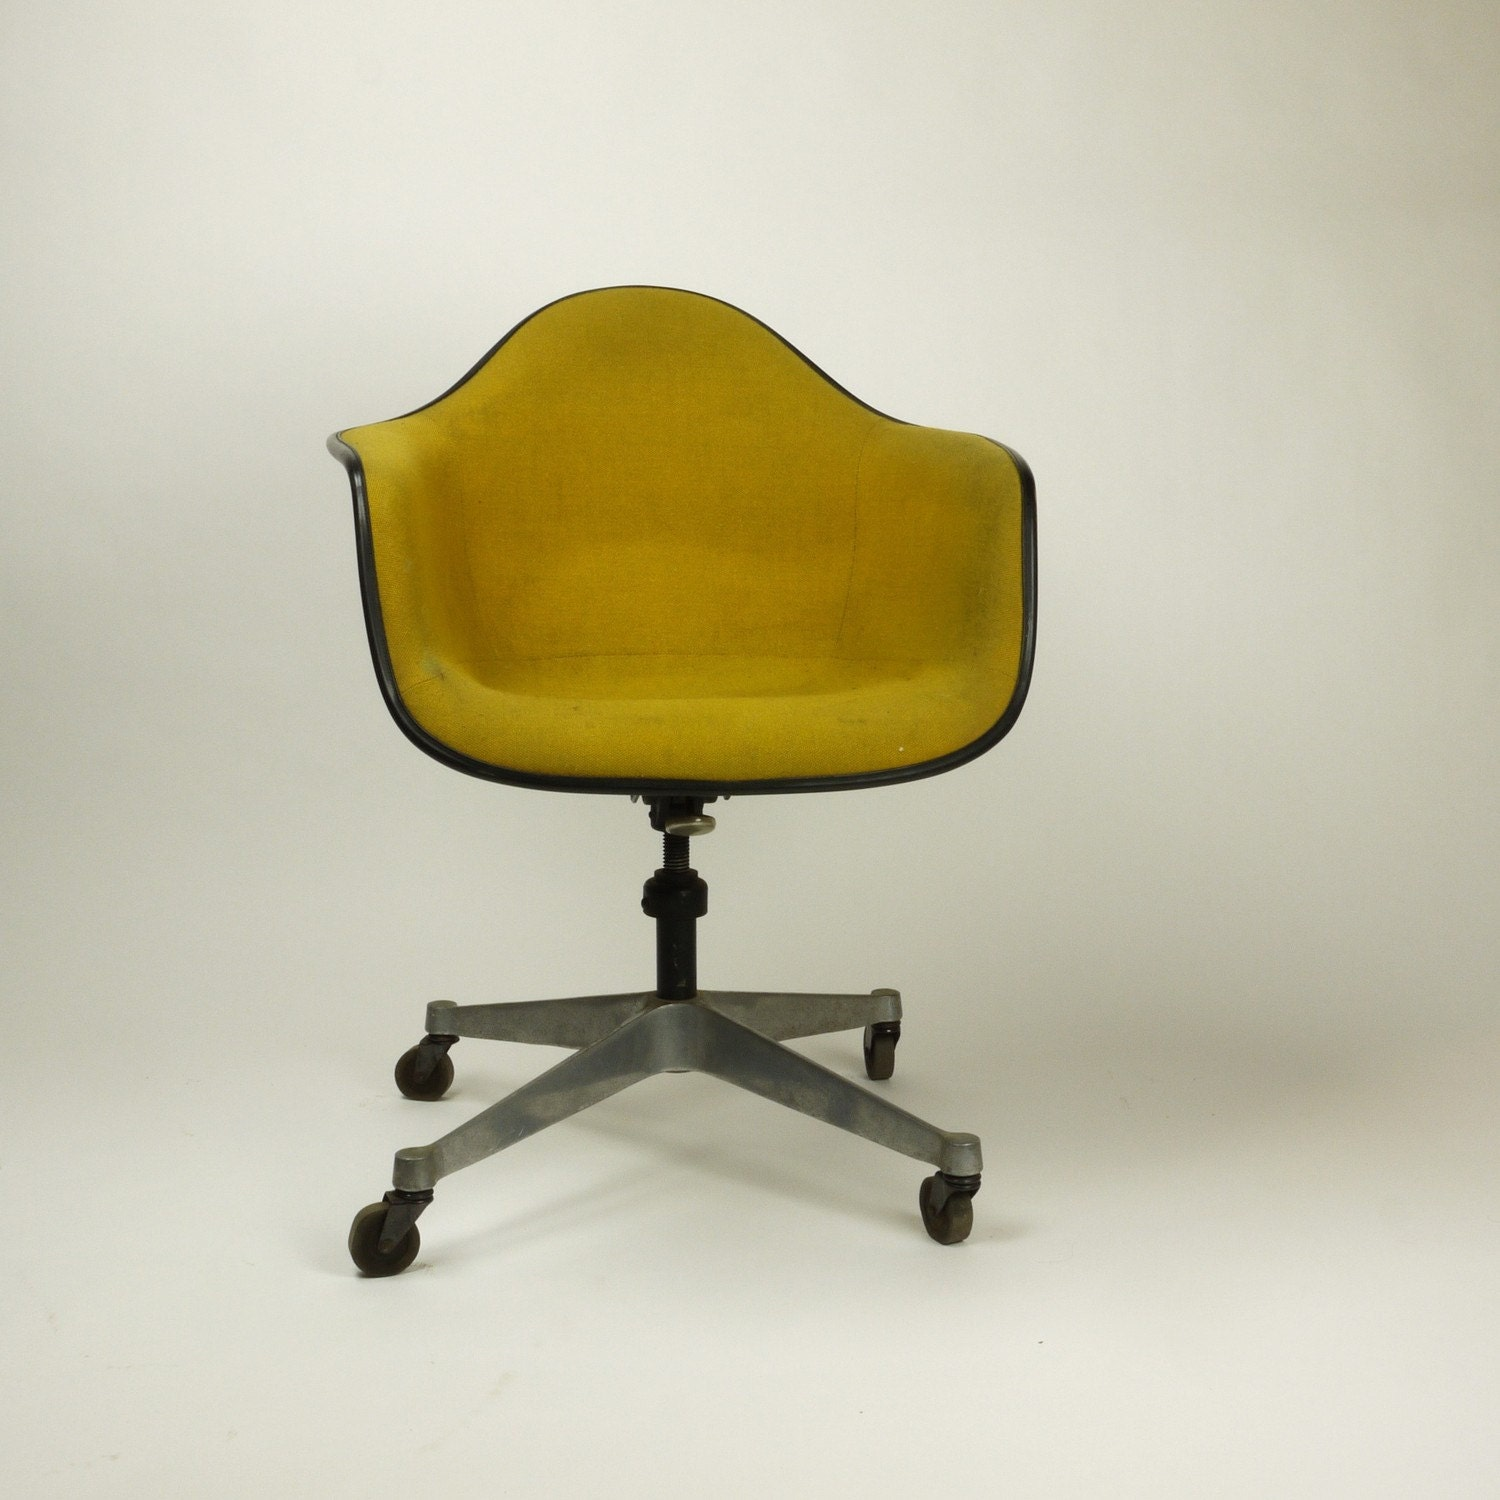 vintage office chairs jrc fishing chair accessories mid century herman miller upholstered shell